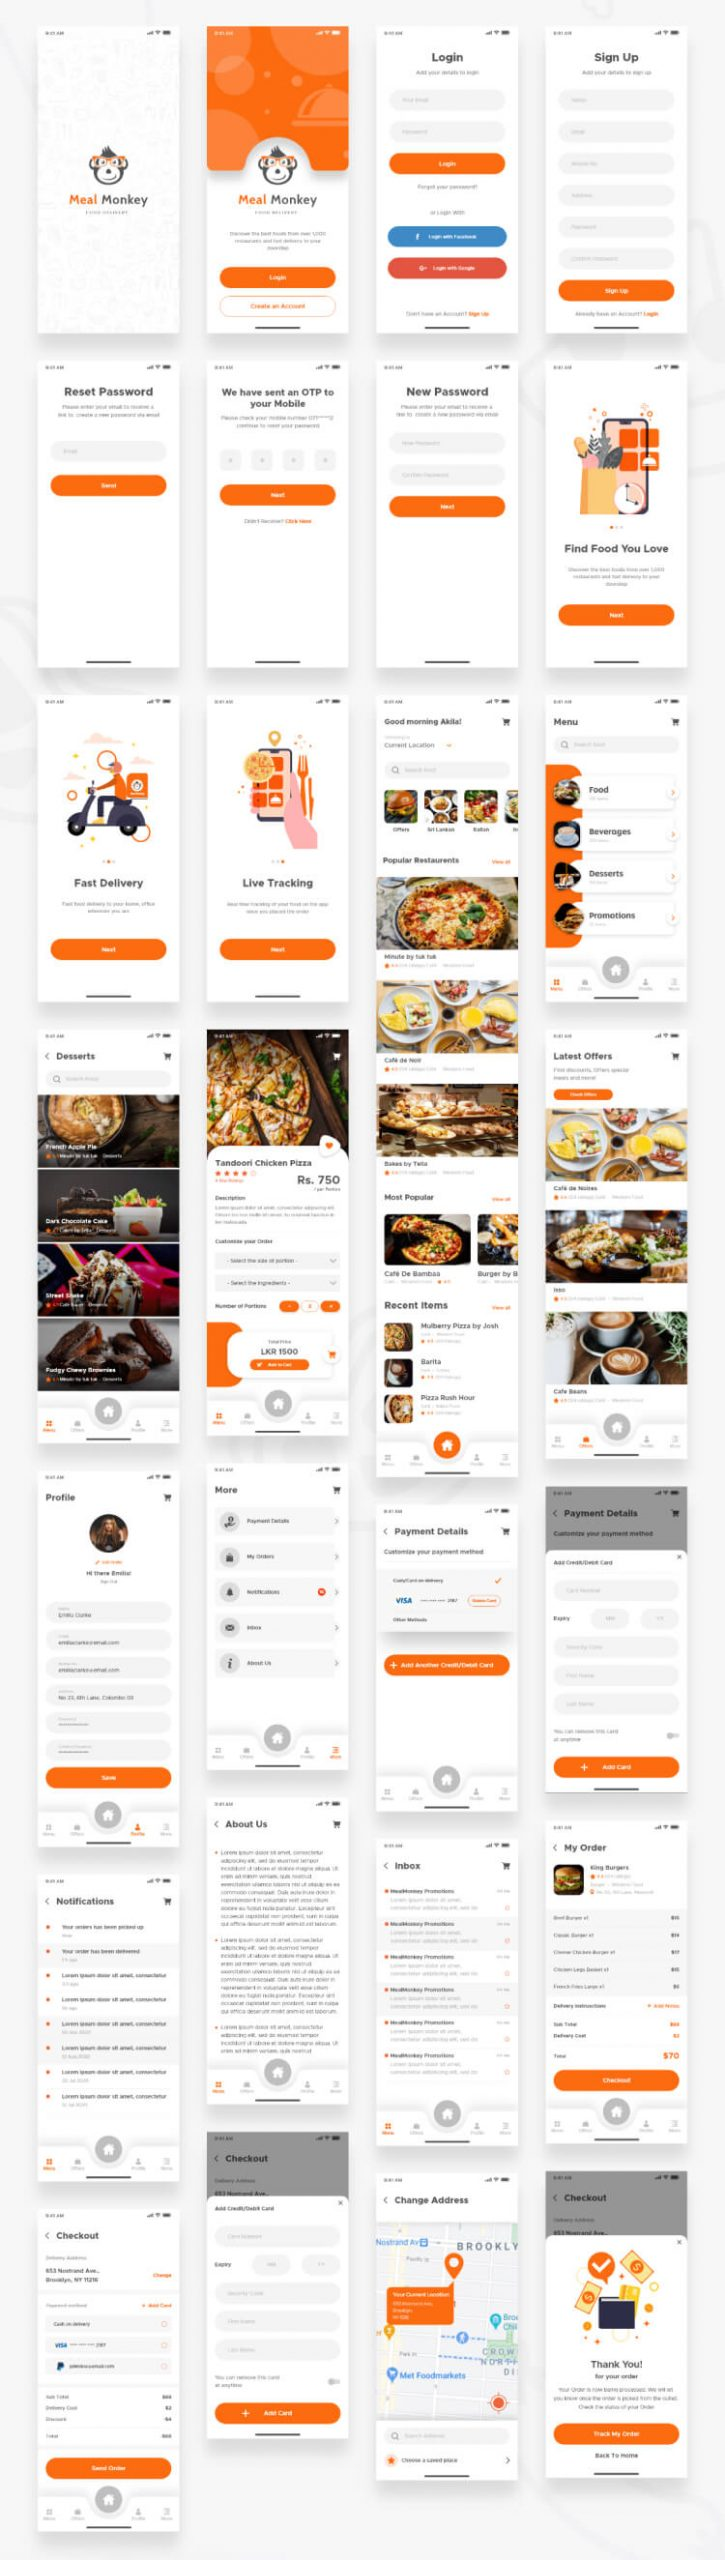 food delivery ui kit for adobe xd 2 scaled - UI Freebies